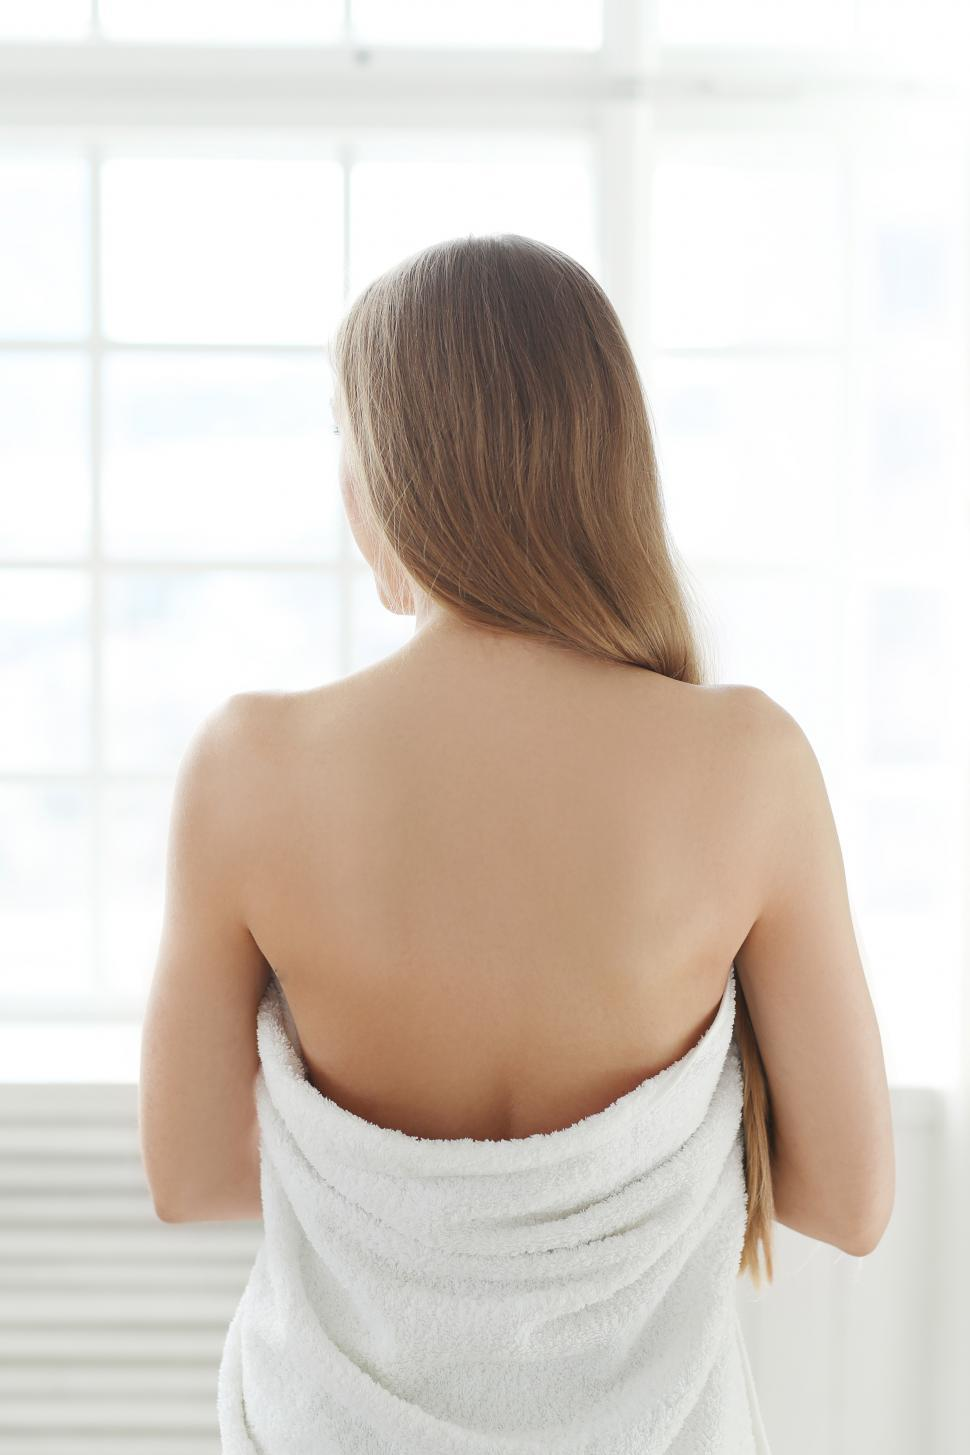 Download Free Stock Photo of Woman with back to camera